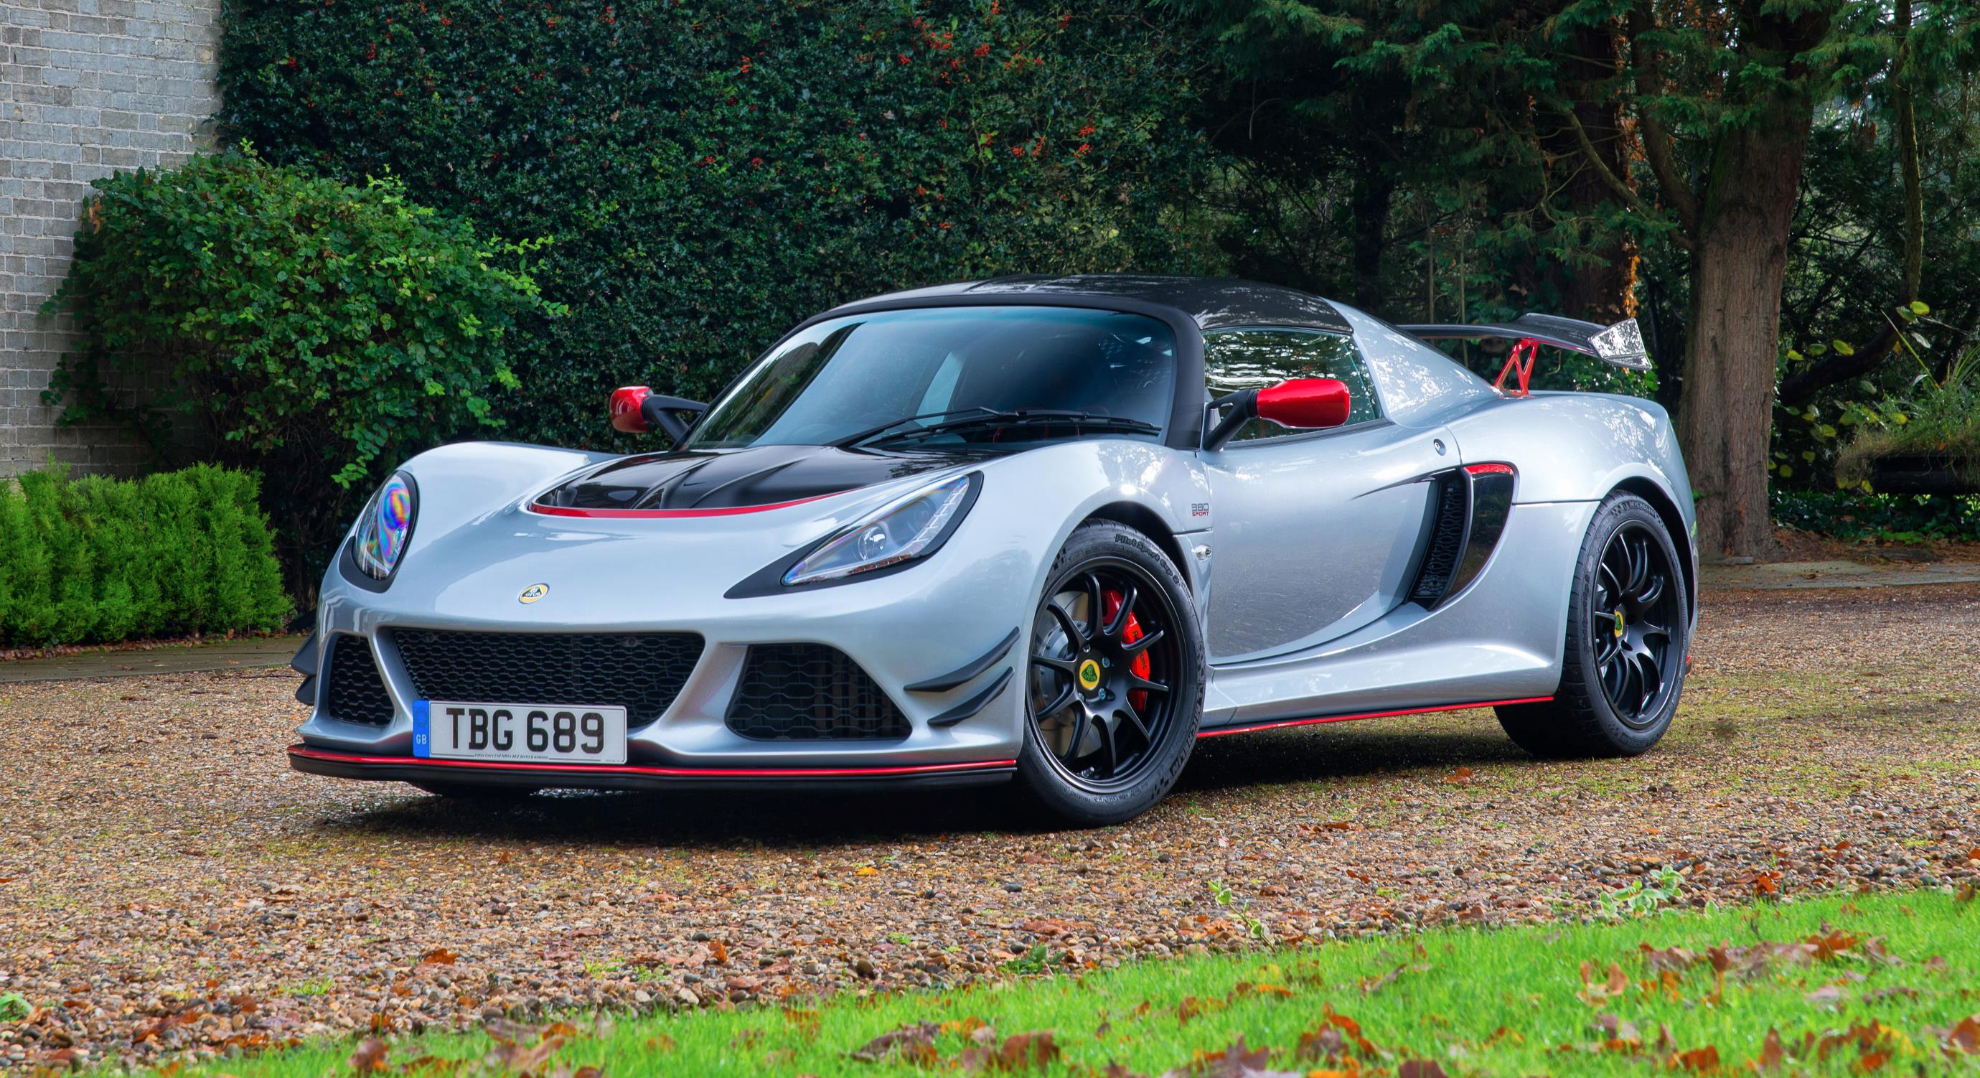 Lotus Elise 0 60 >> Lotus Reveals The Fastest Exige Ever Made It Does 0 60 In